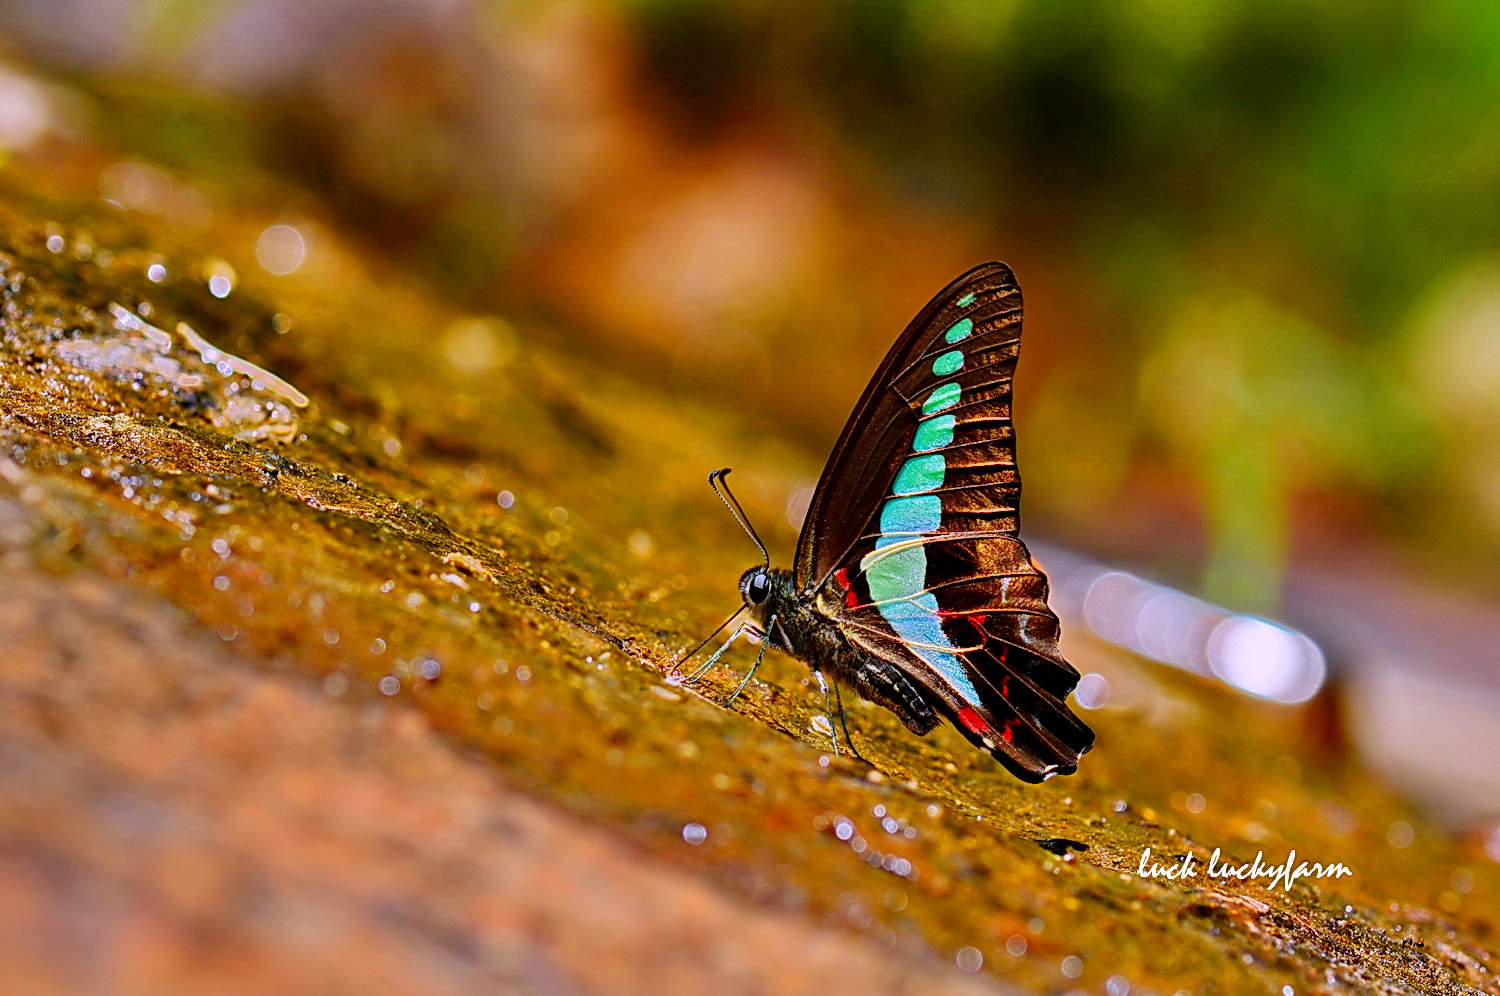 Photograph  Common Bluebottle  by Luck Luckyfarm on 500px